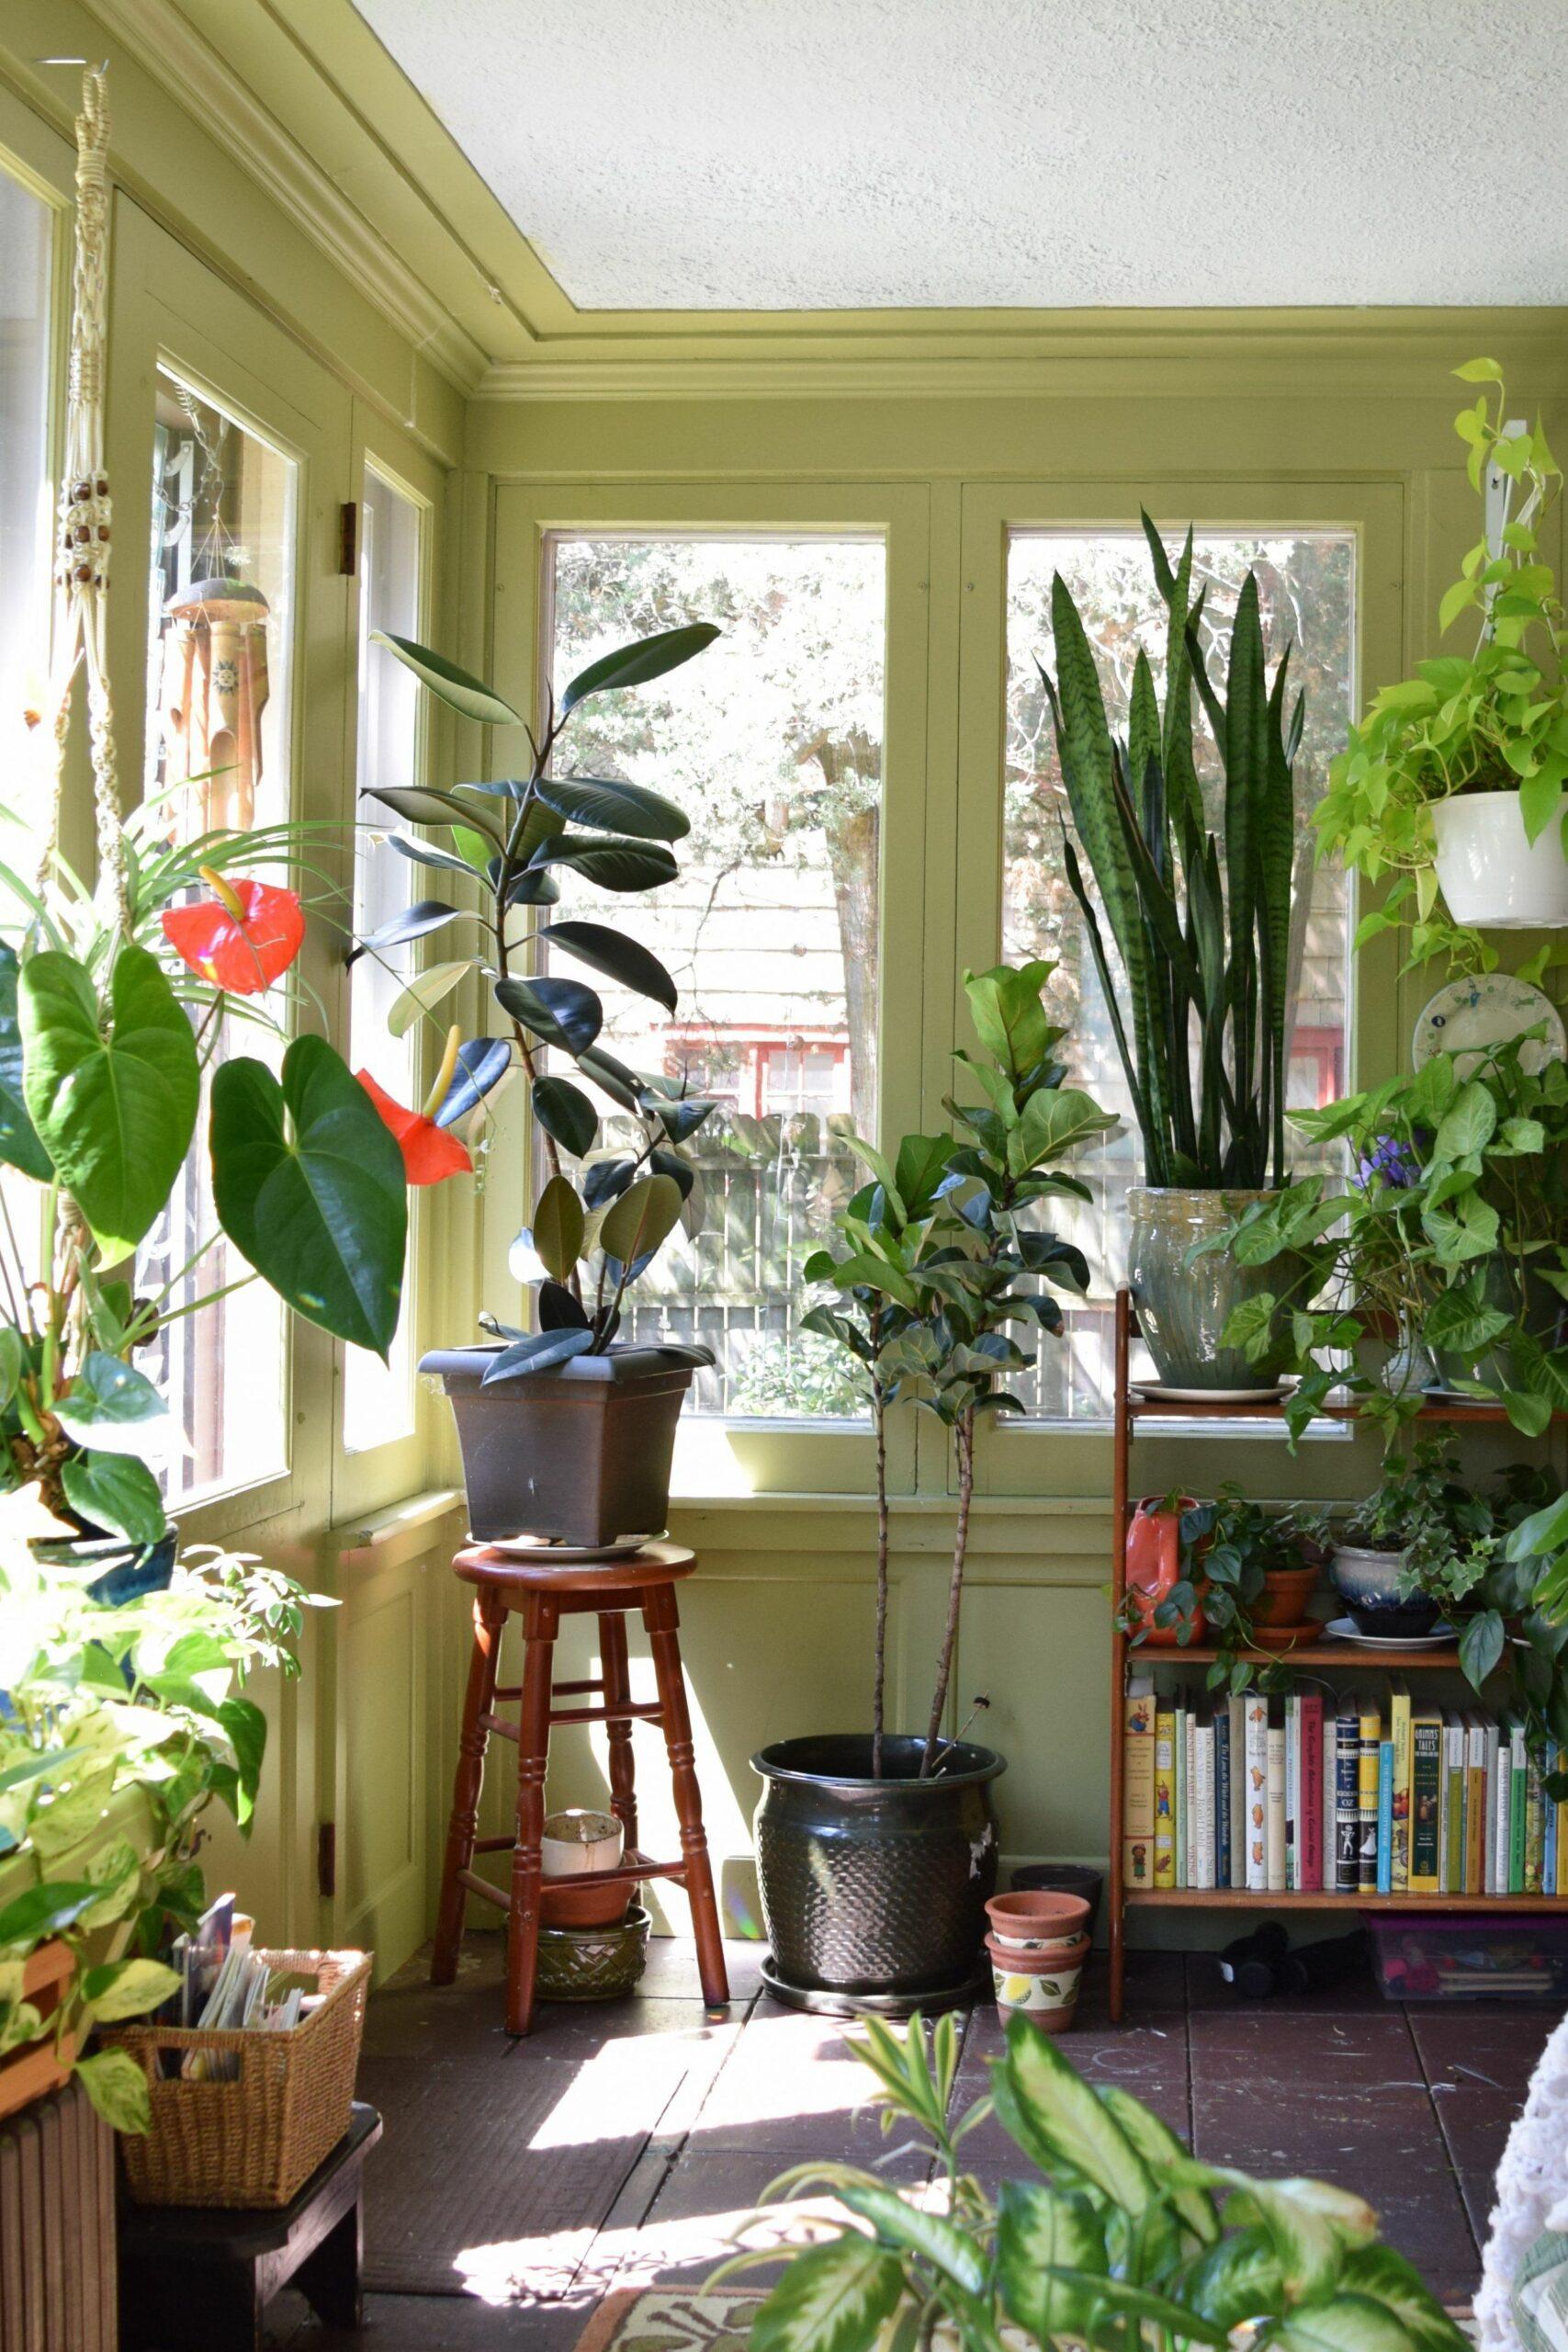 Sunroom Style: Ideas to Steal for Other Rooms in Your Home | Room ..